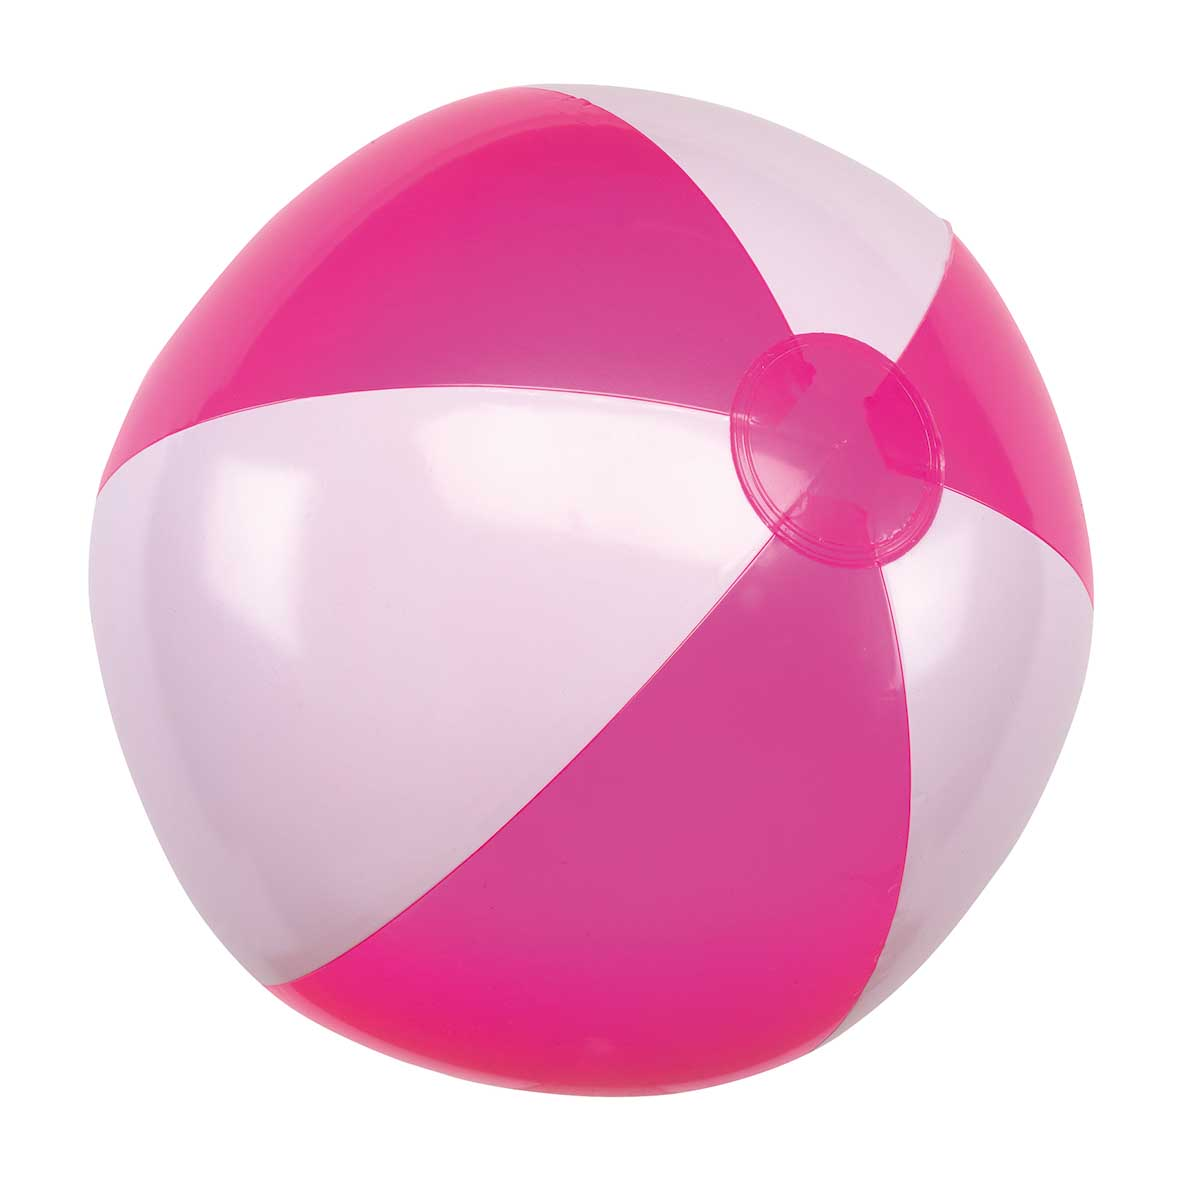 Inflatable beach ball - Pink bb-10 pi